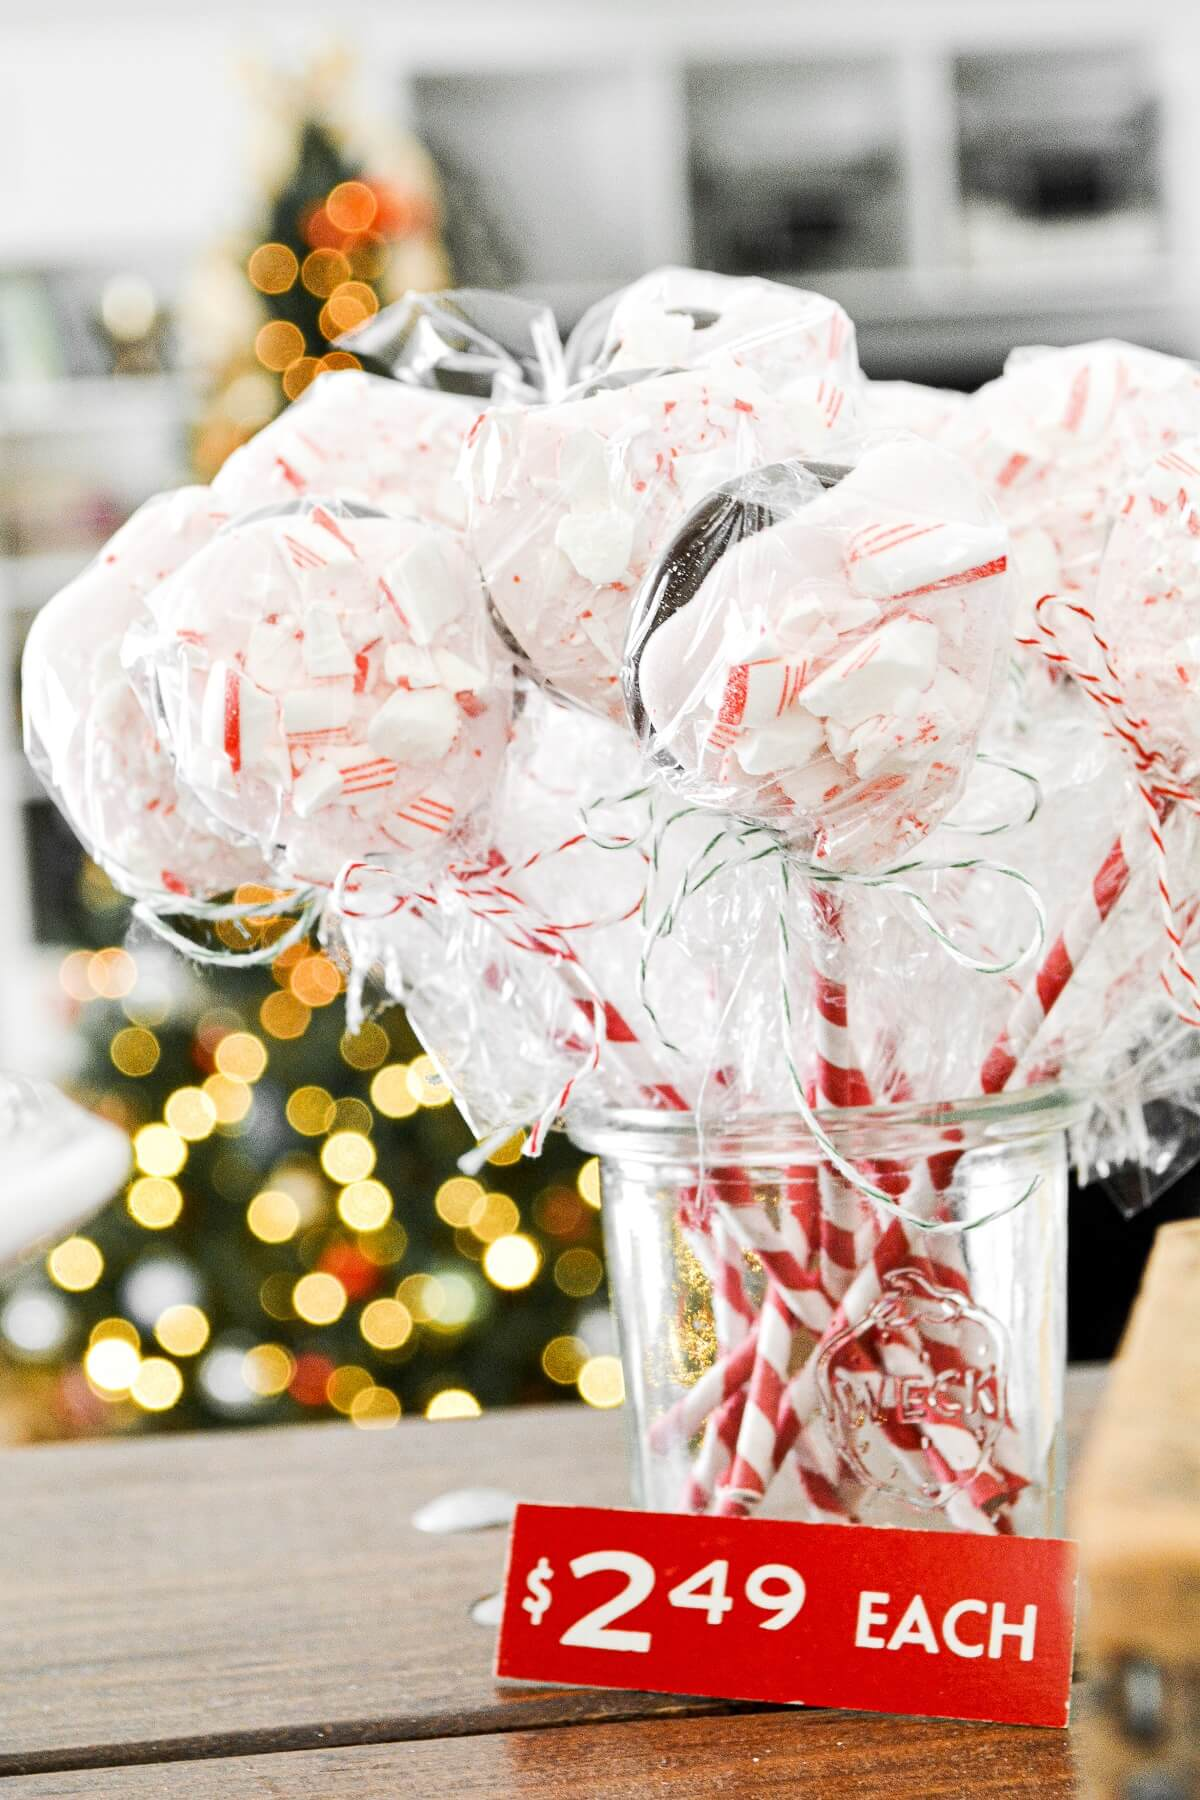 Peppermint bark pops on red and white striped sticks.